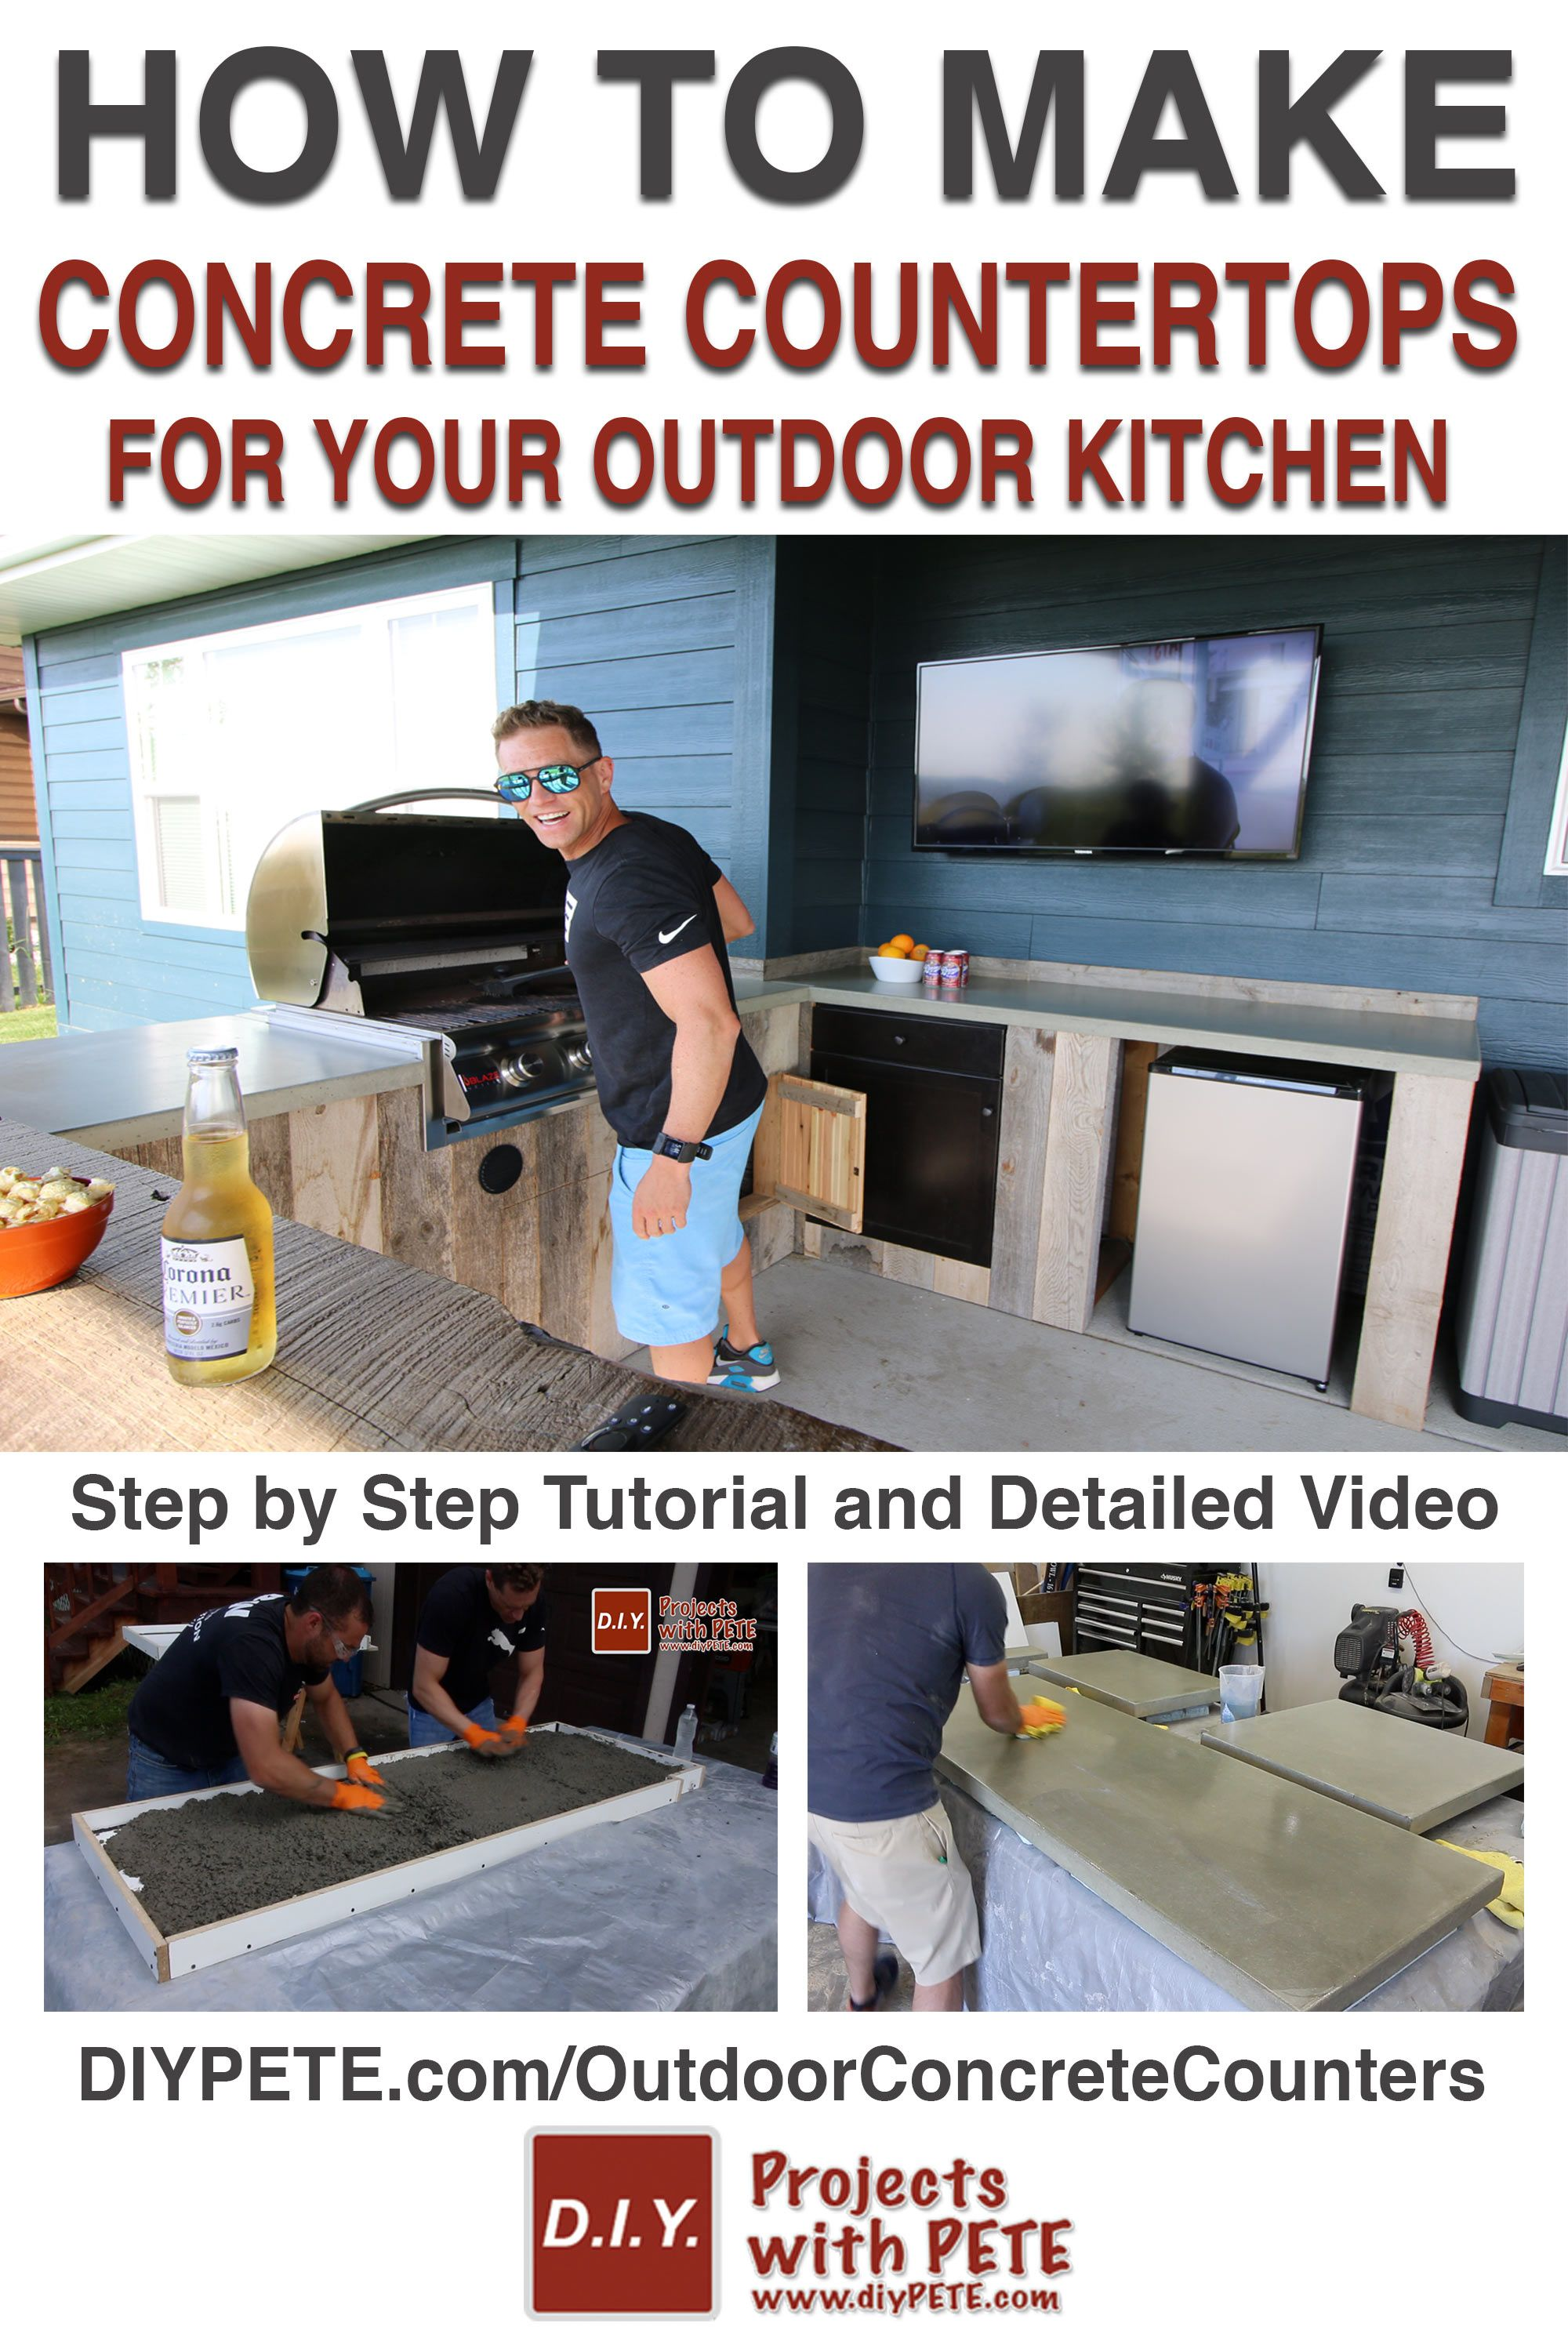 How To Make Concrete Counters For An Outdoor Kitchen Diy Pete Countertops